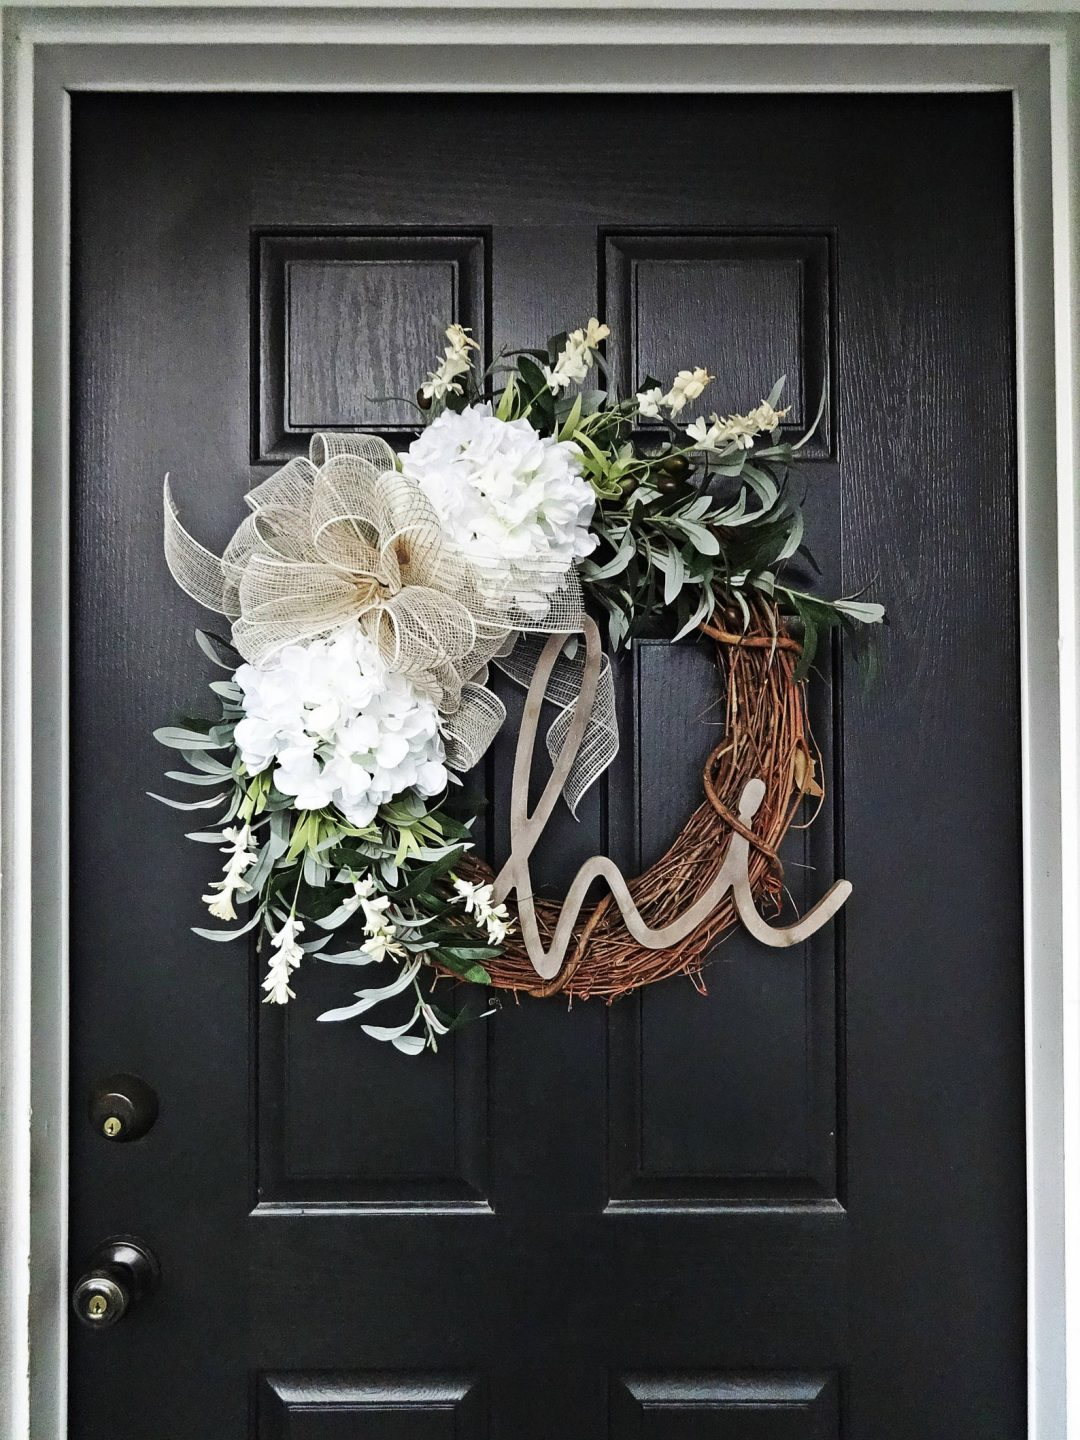 Modern farmhouse wreaths, best summer wreaths for front door with white hydrangea and grapevine